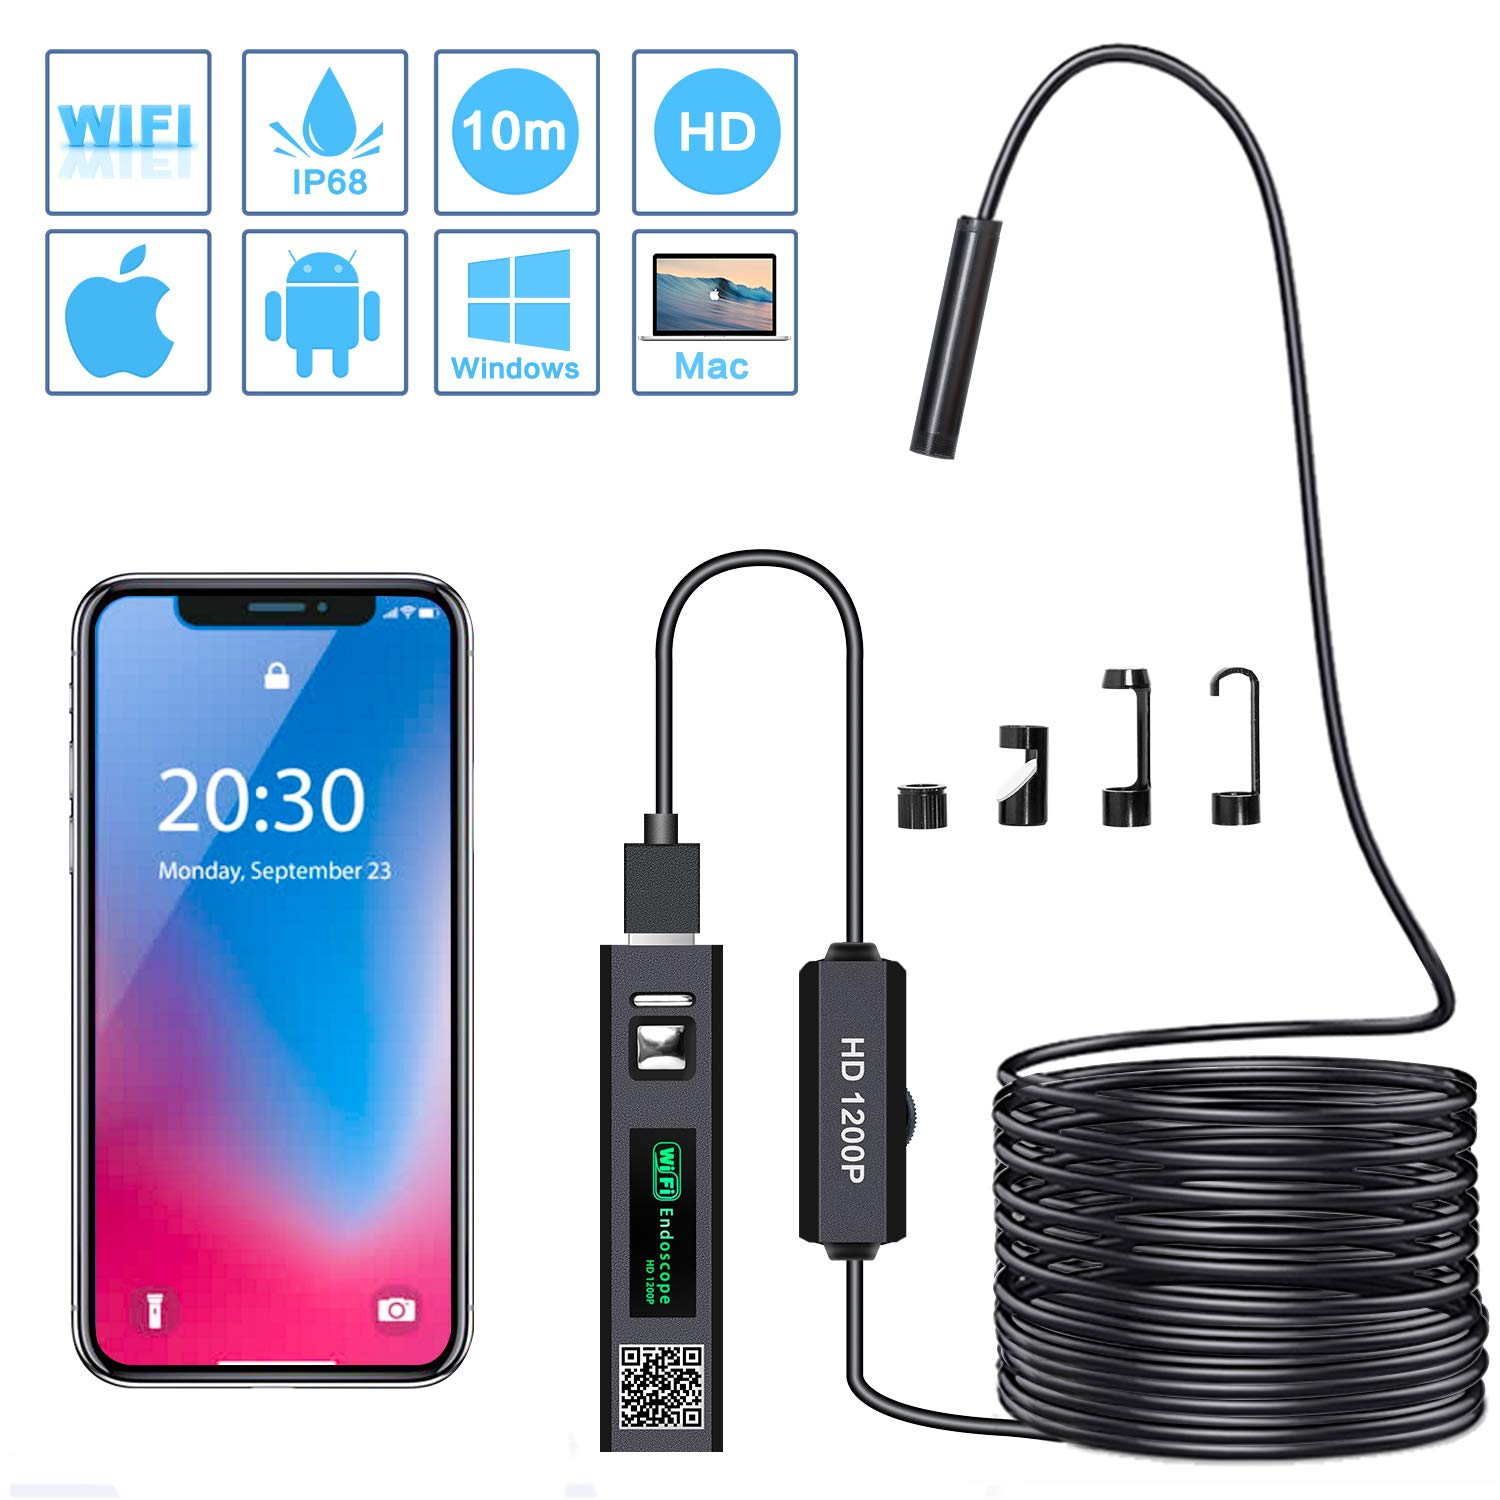 PiAEK Endoscope, WiFi d'Inspection Camé ra Endoscopique 2.0 Mé gapixels 1200P HD IP68 é tanche, Câ ble Semi Rigide(10 M) avec 8 LED Borescope Compatible avec Android,iOS,Mac,Tablette et Windows